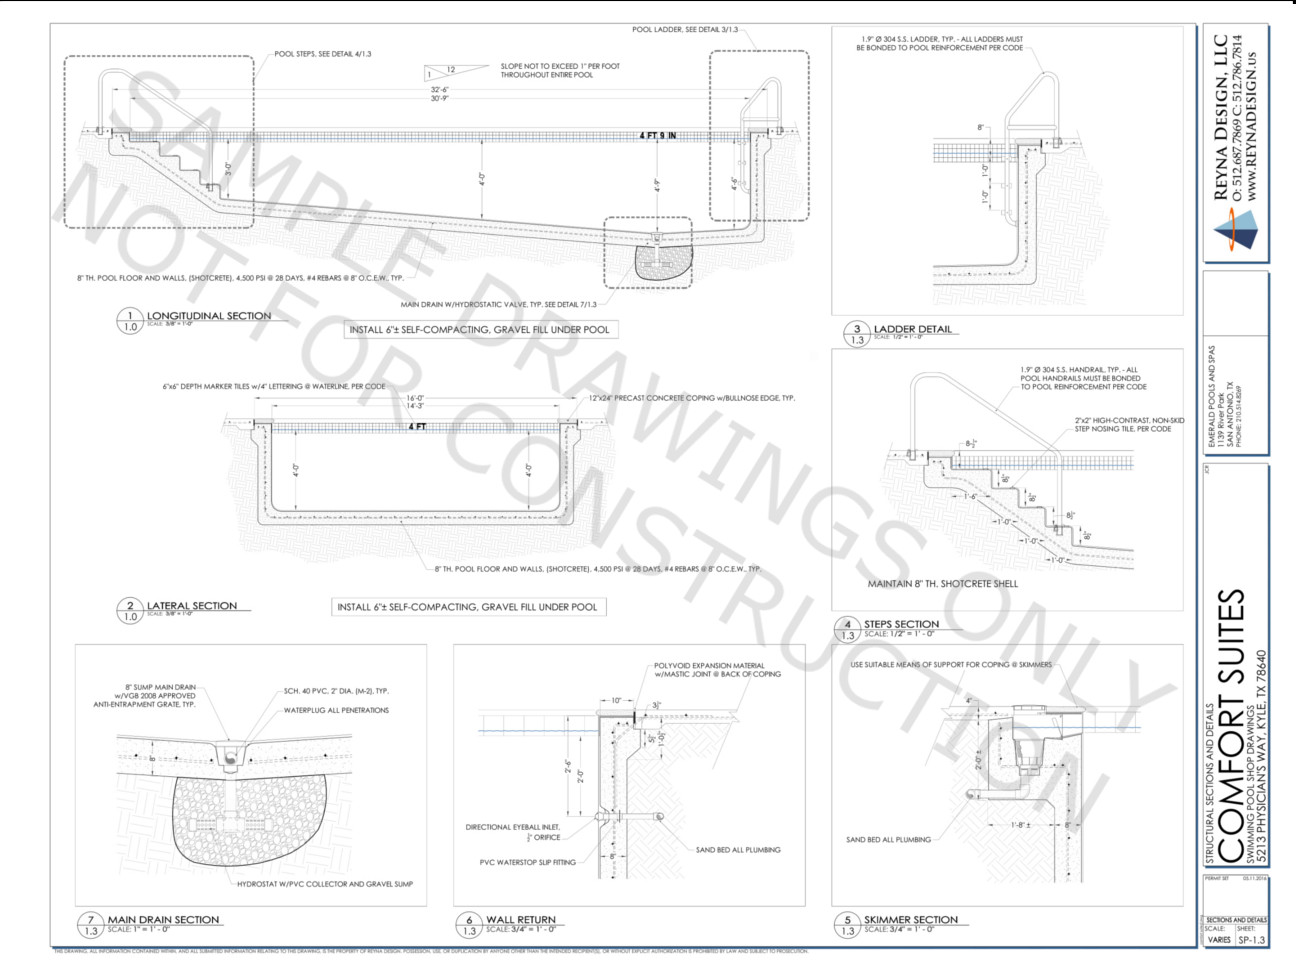 Swimming pool structural design amazing structural design of swimming pool within swimming pool for Structural design of swimming pool pdf